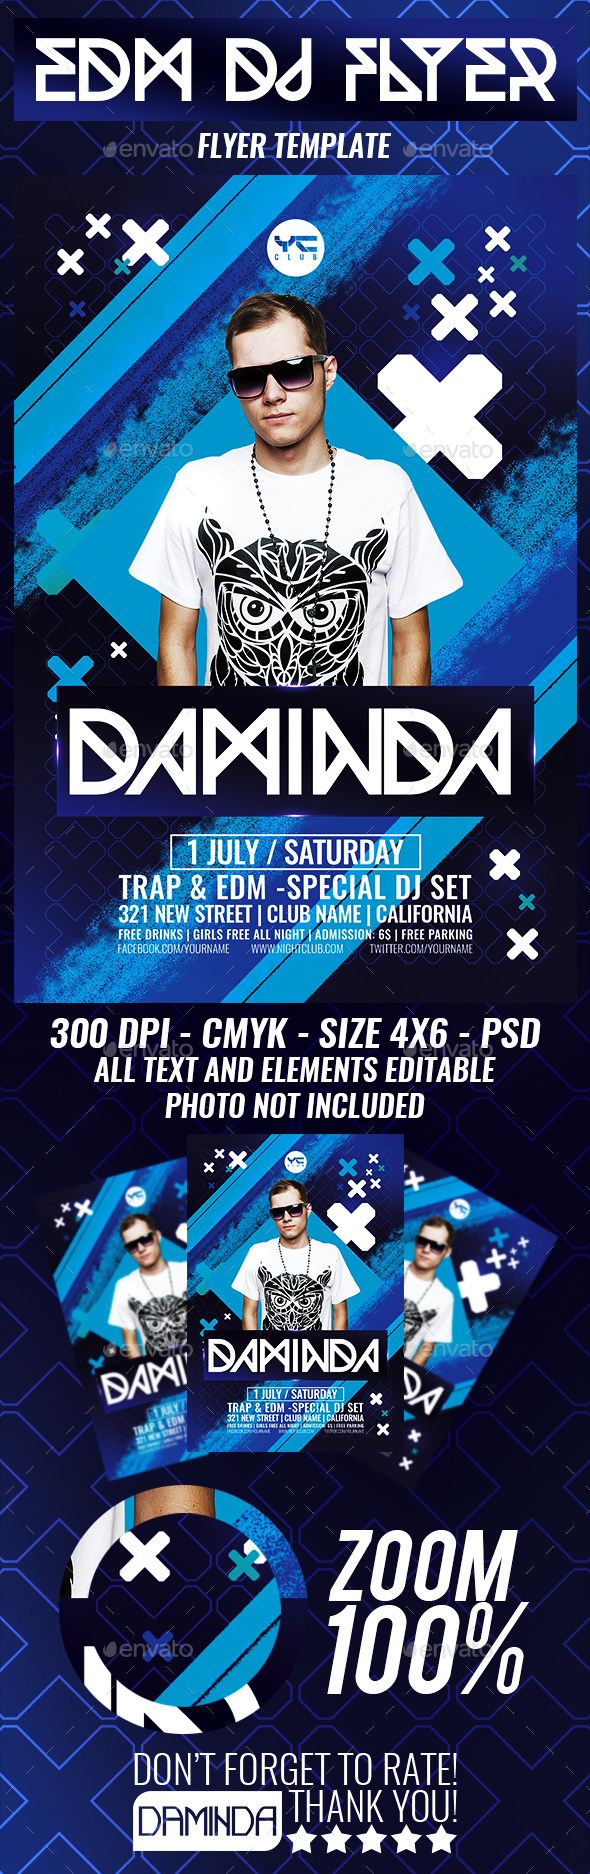 Electro Dj Poster 6 Flyer Template - Clubs & Parties Events